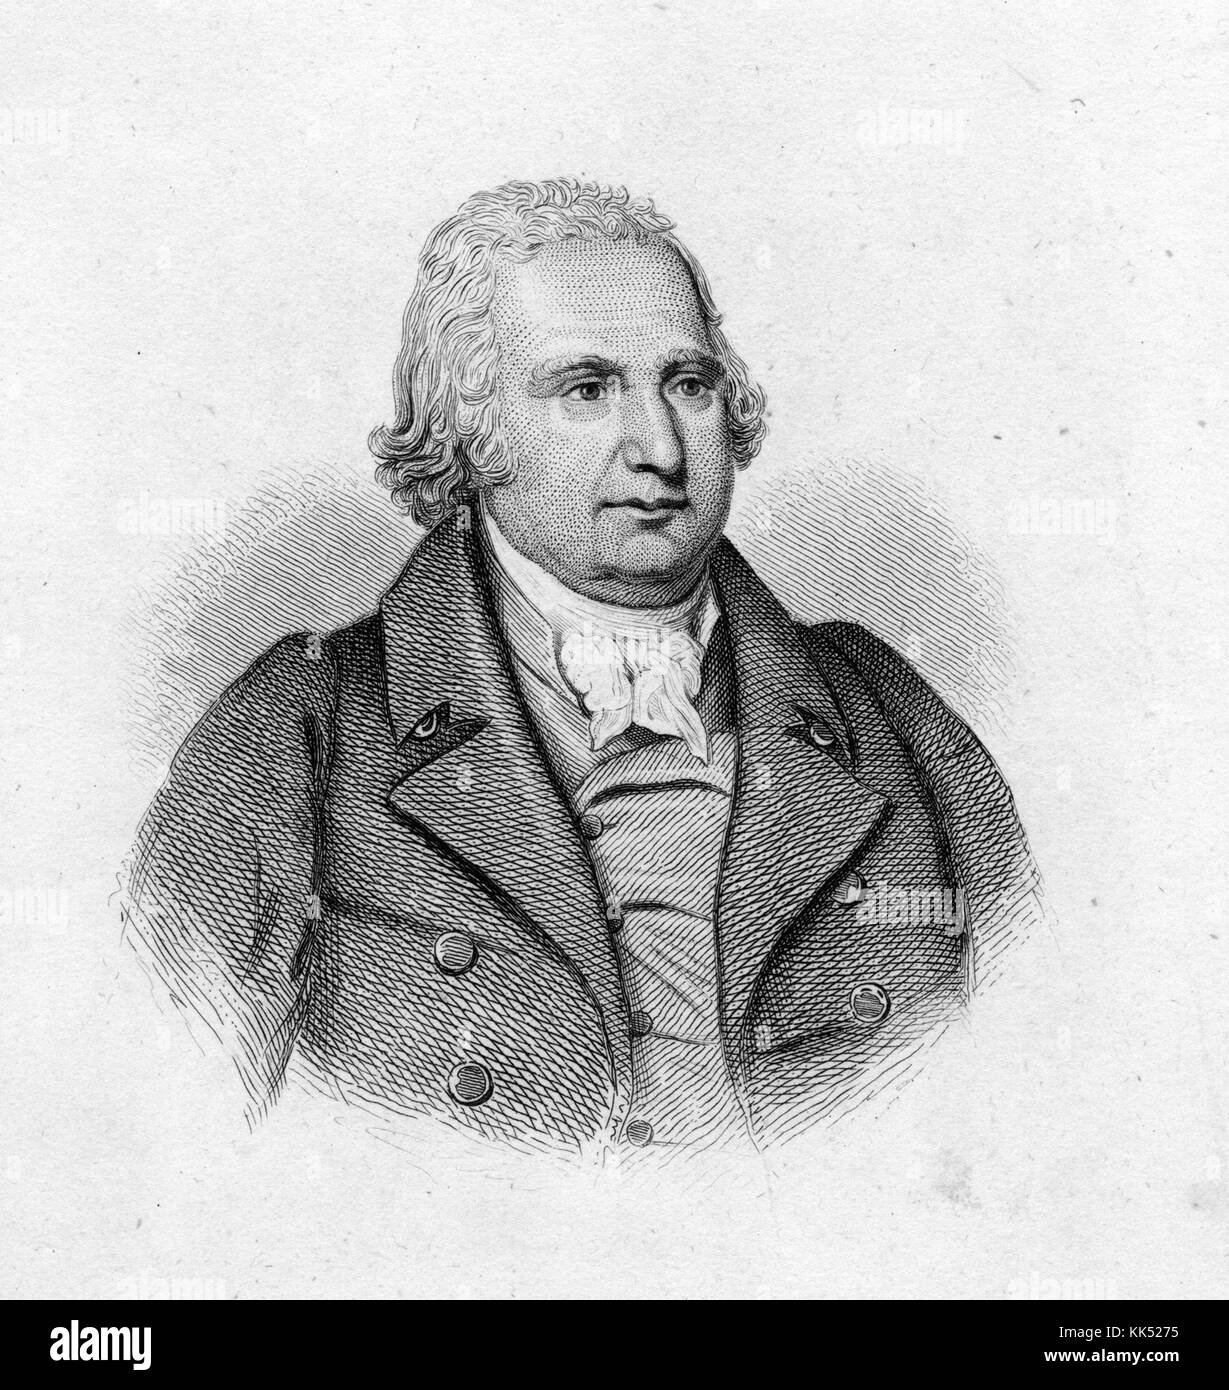 Engraved portrait of John Eager Howard, member of the Continental Congress and former Governor of Maryland, 1840. - Stock Image